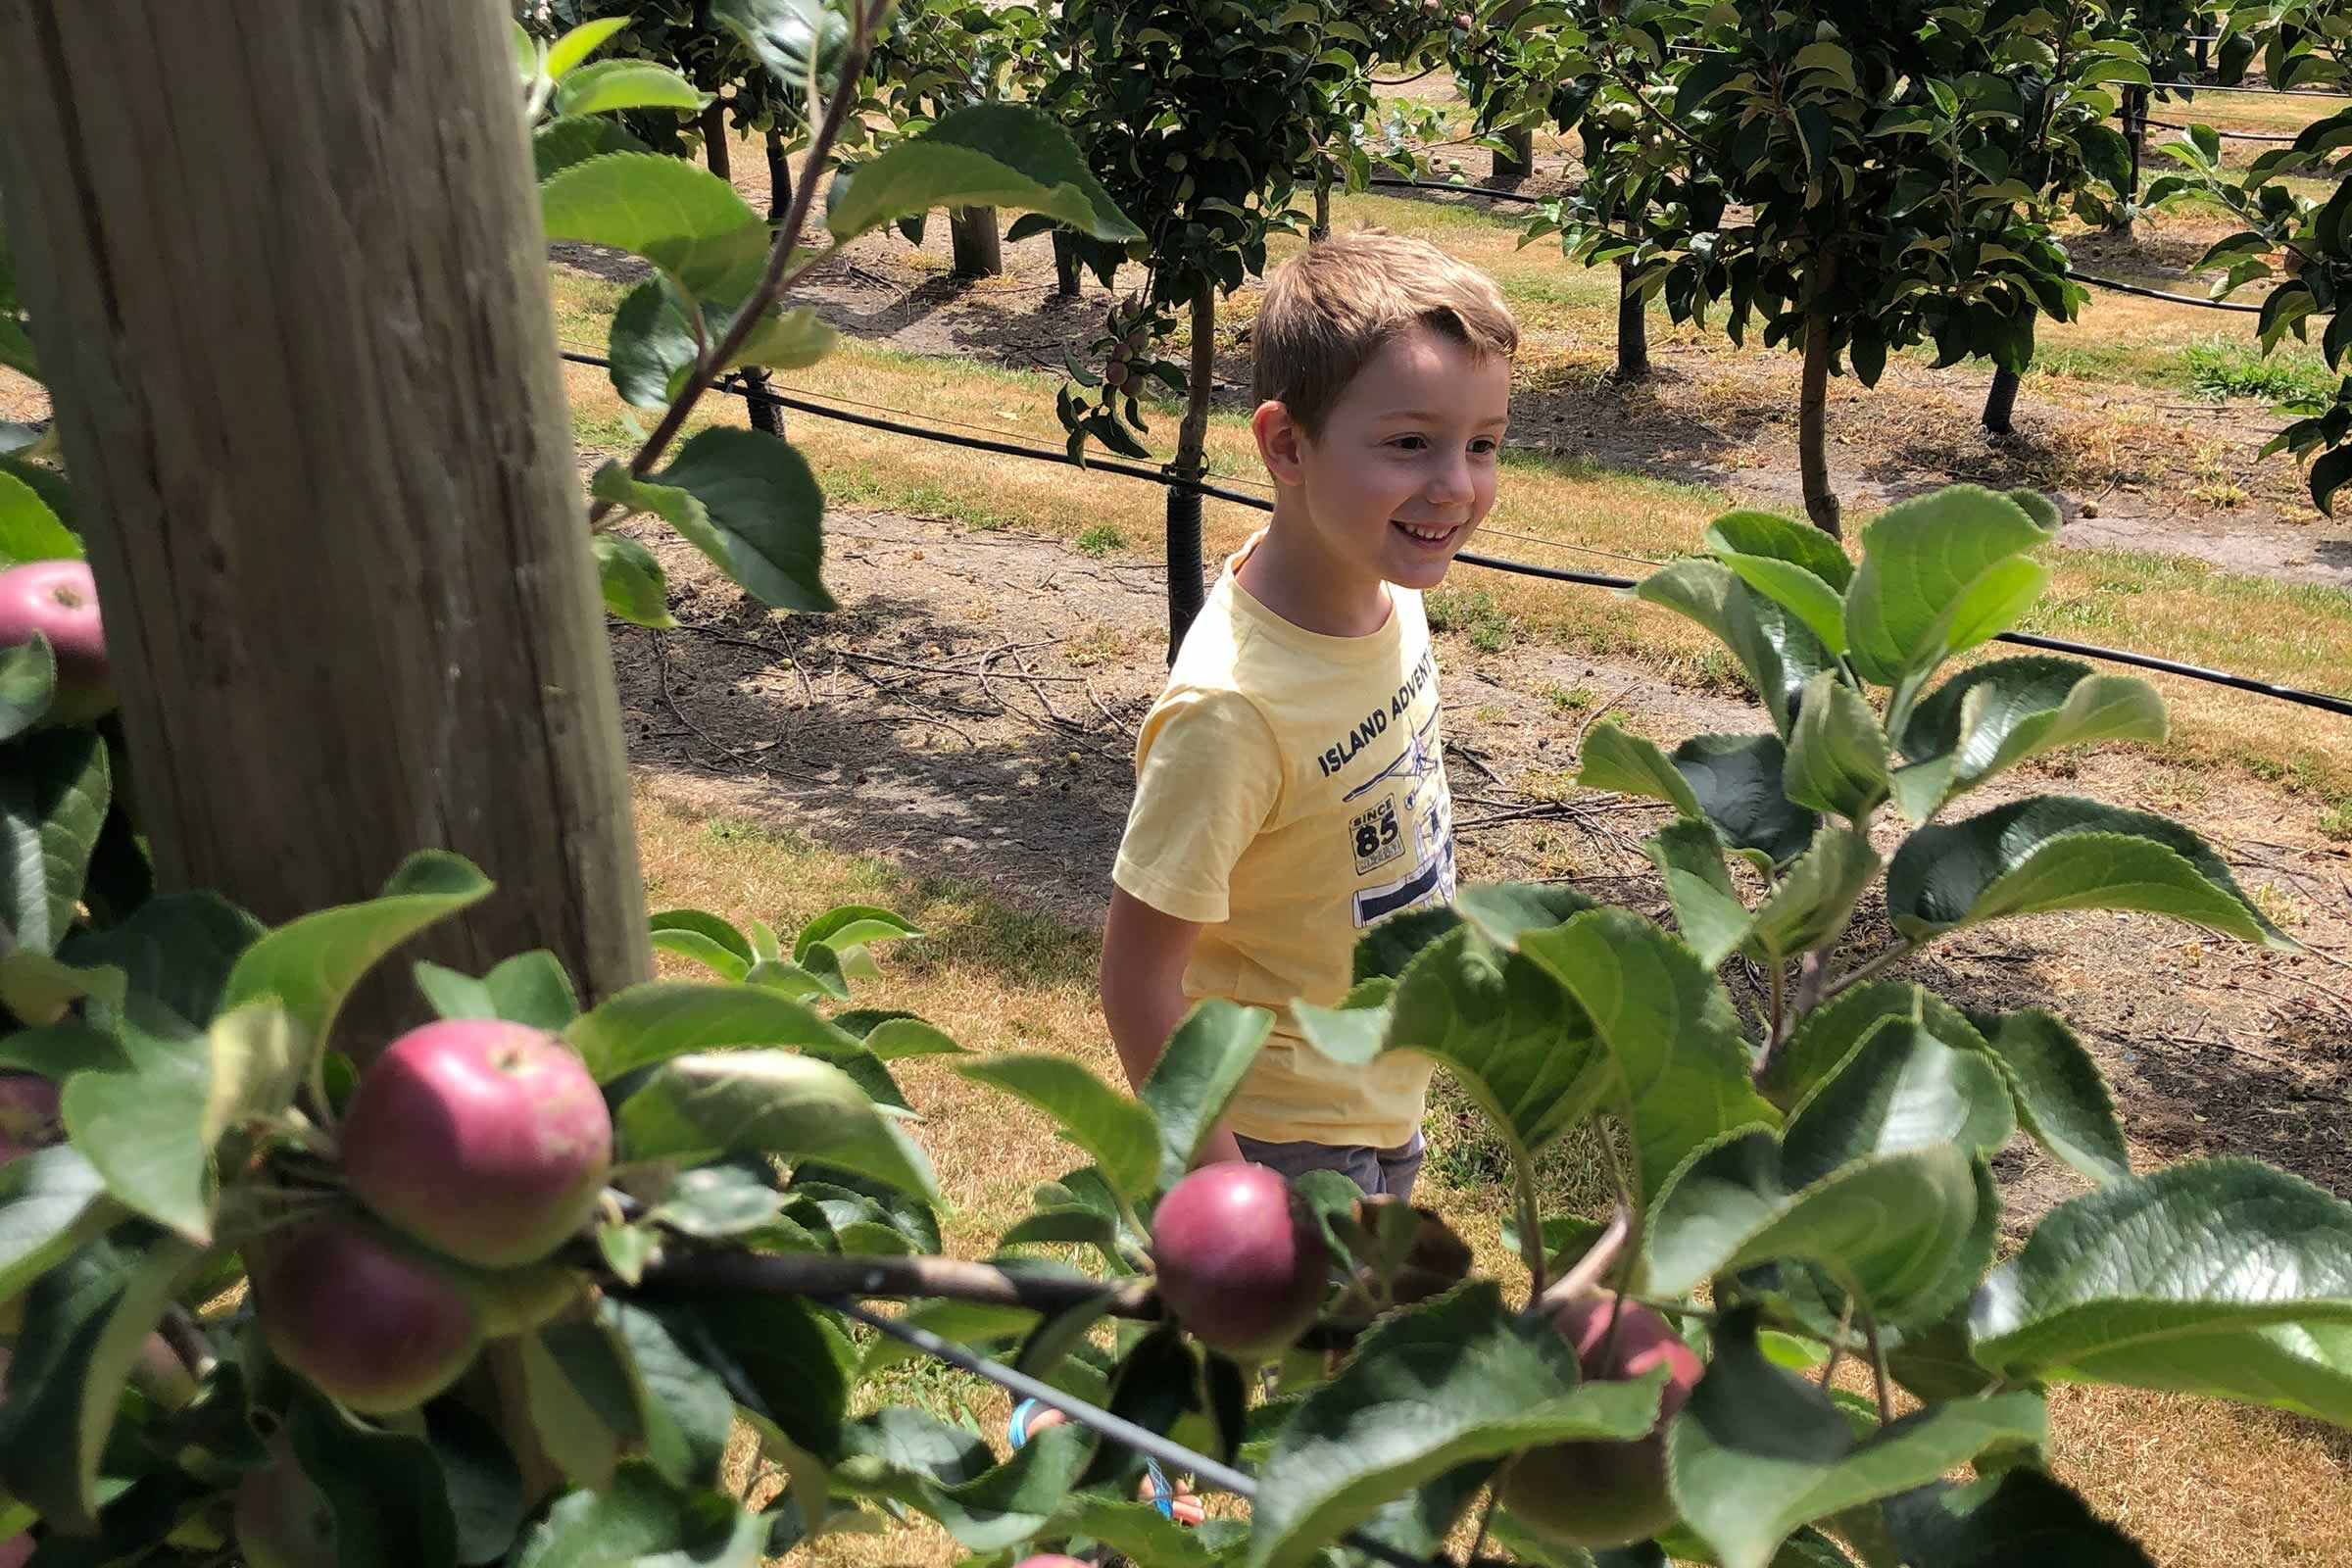 All smiles walking through the apples at Spreyton Cider Co.